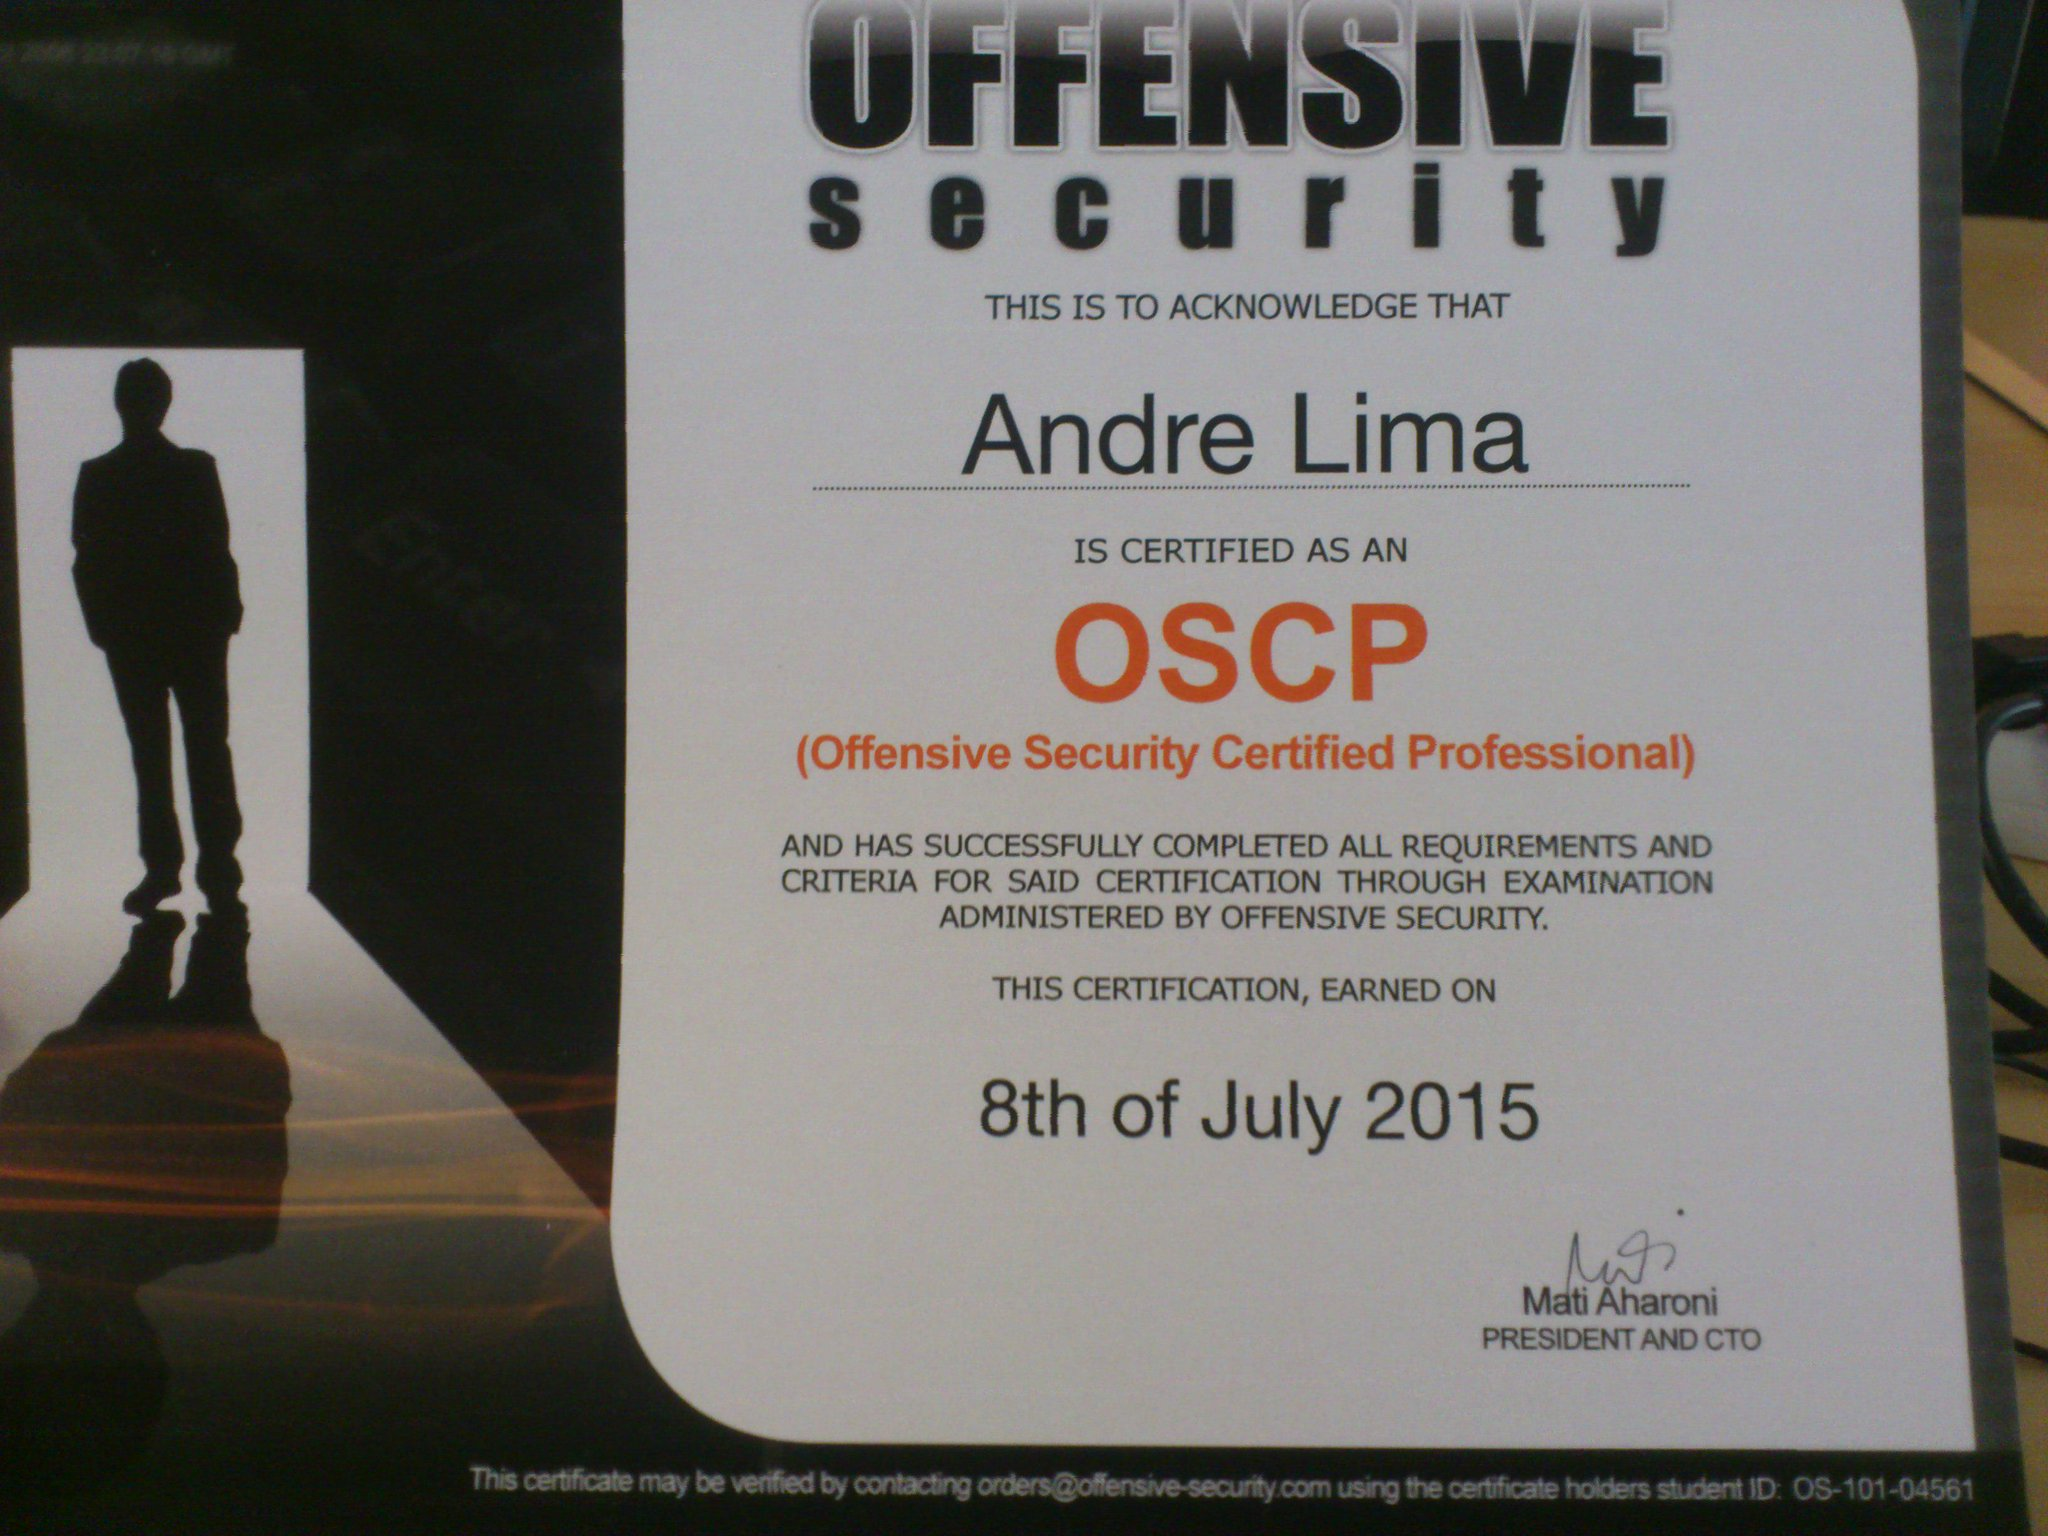 Andre Lima On Twitter Just Got My Oscp Certificate Proud That I